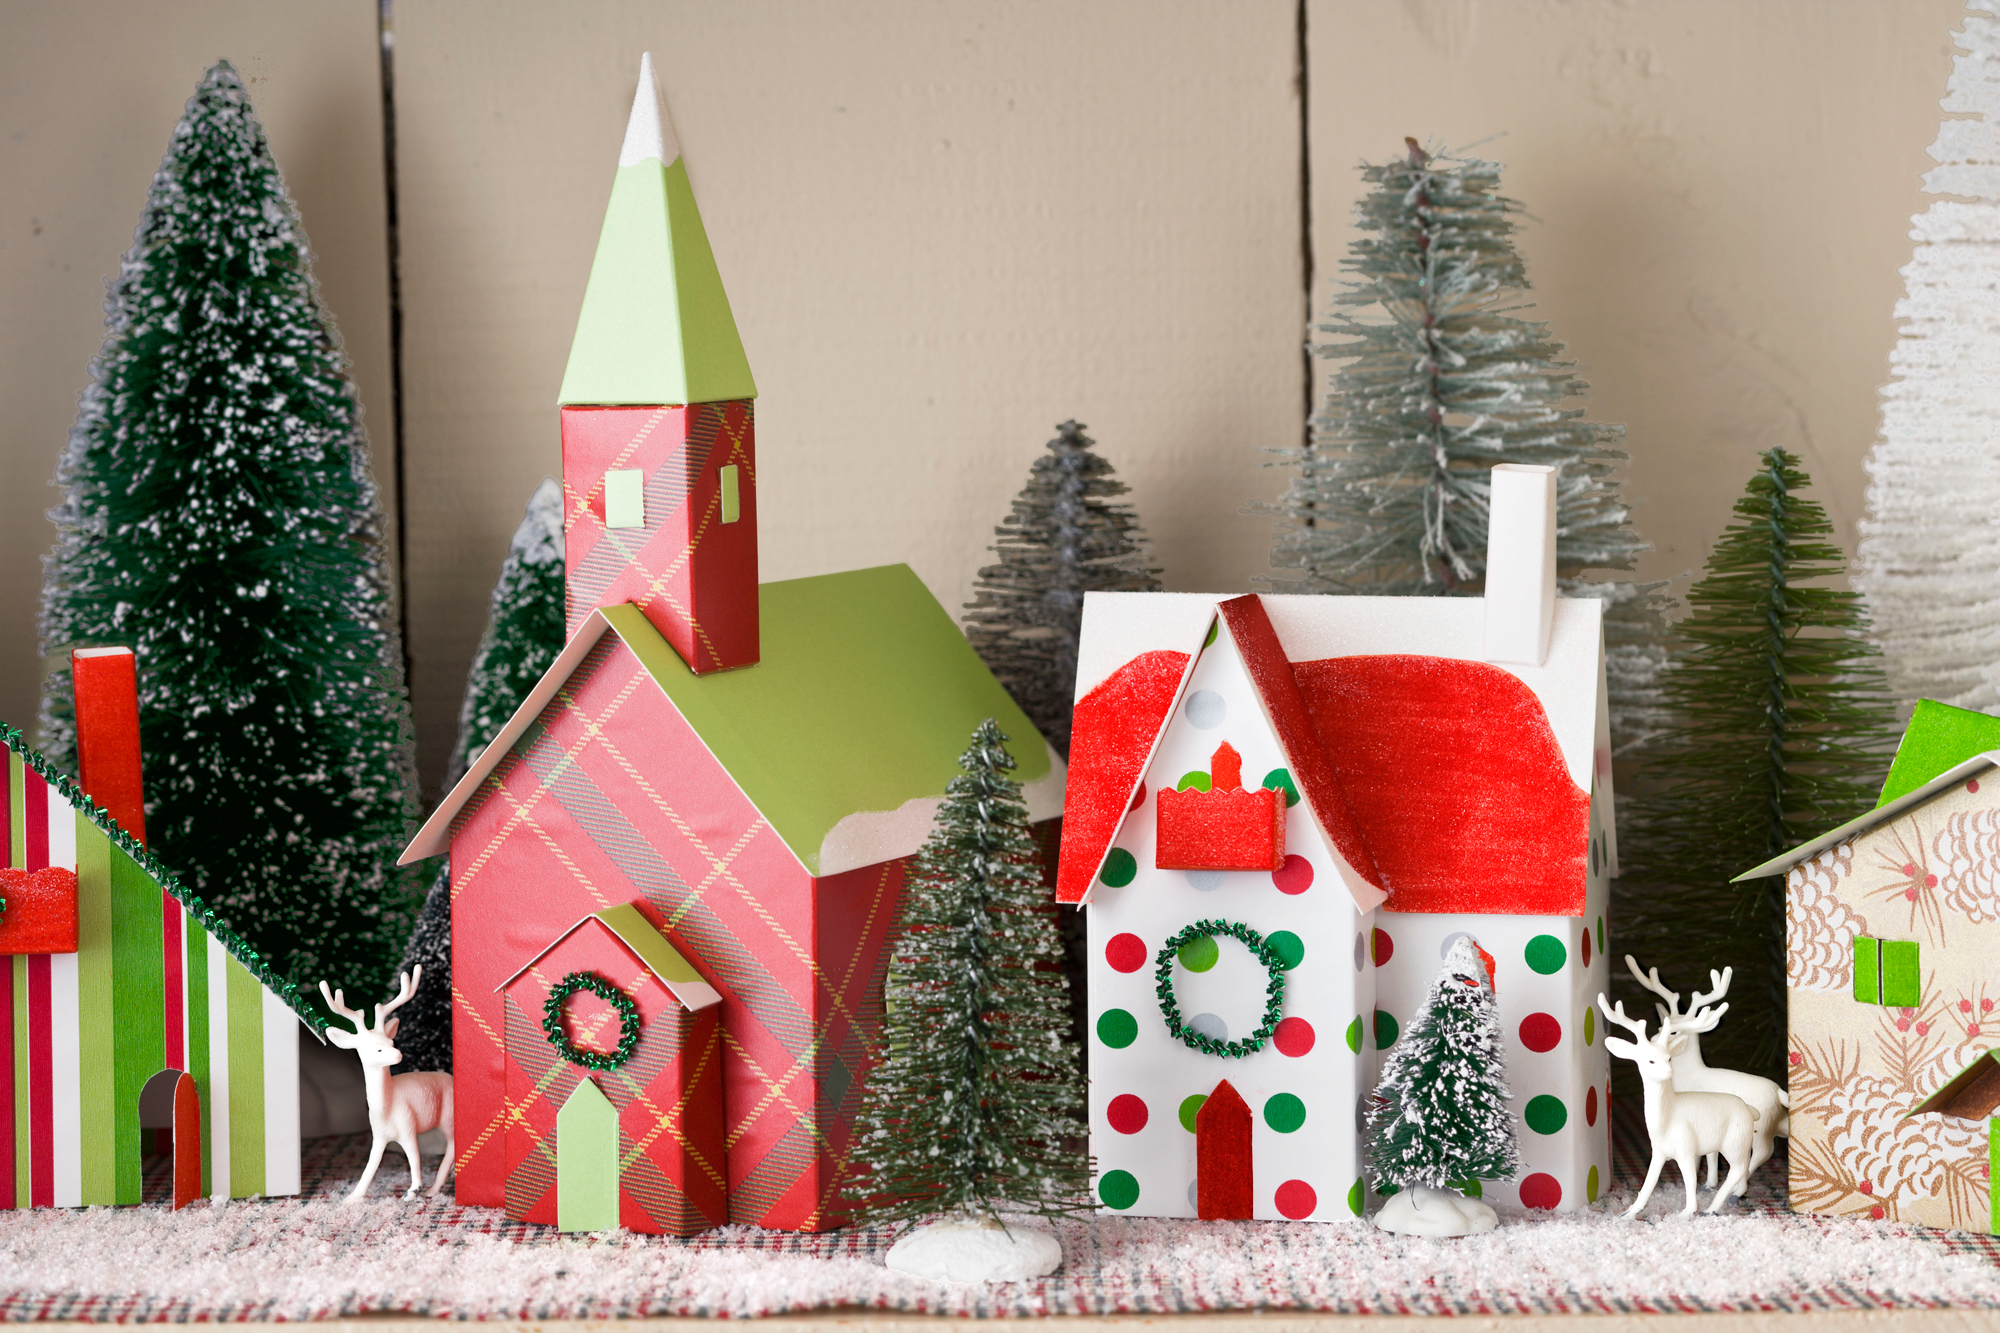 Christmas Decoration Pics 100 country christmas decorations - holiday decorating ideas 2017